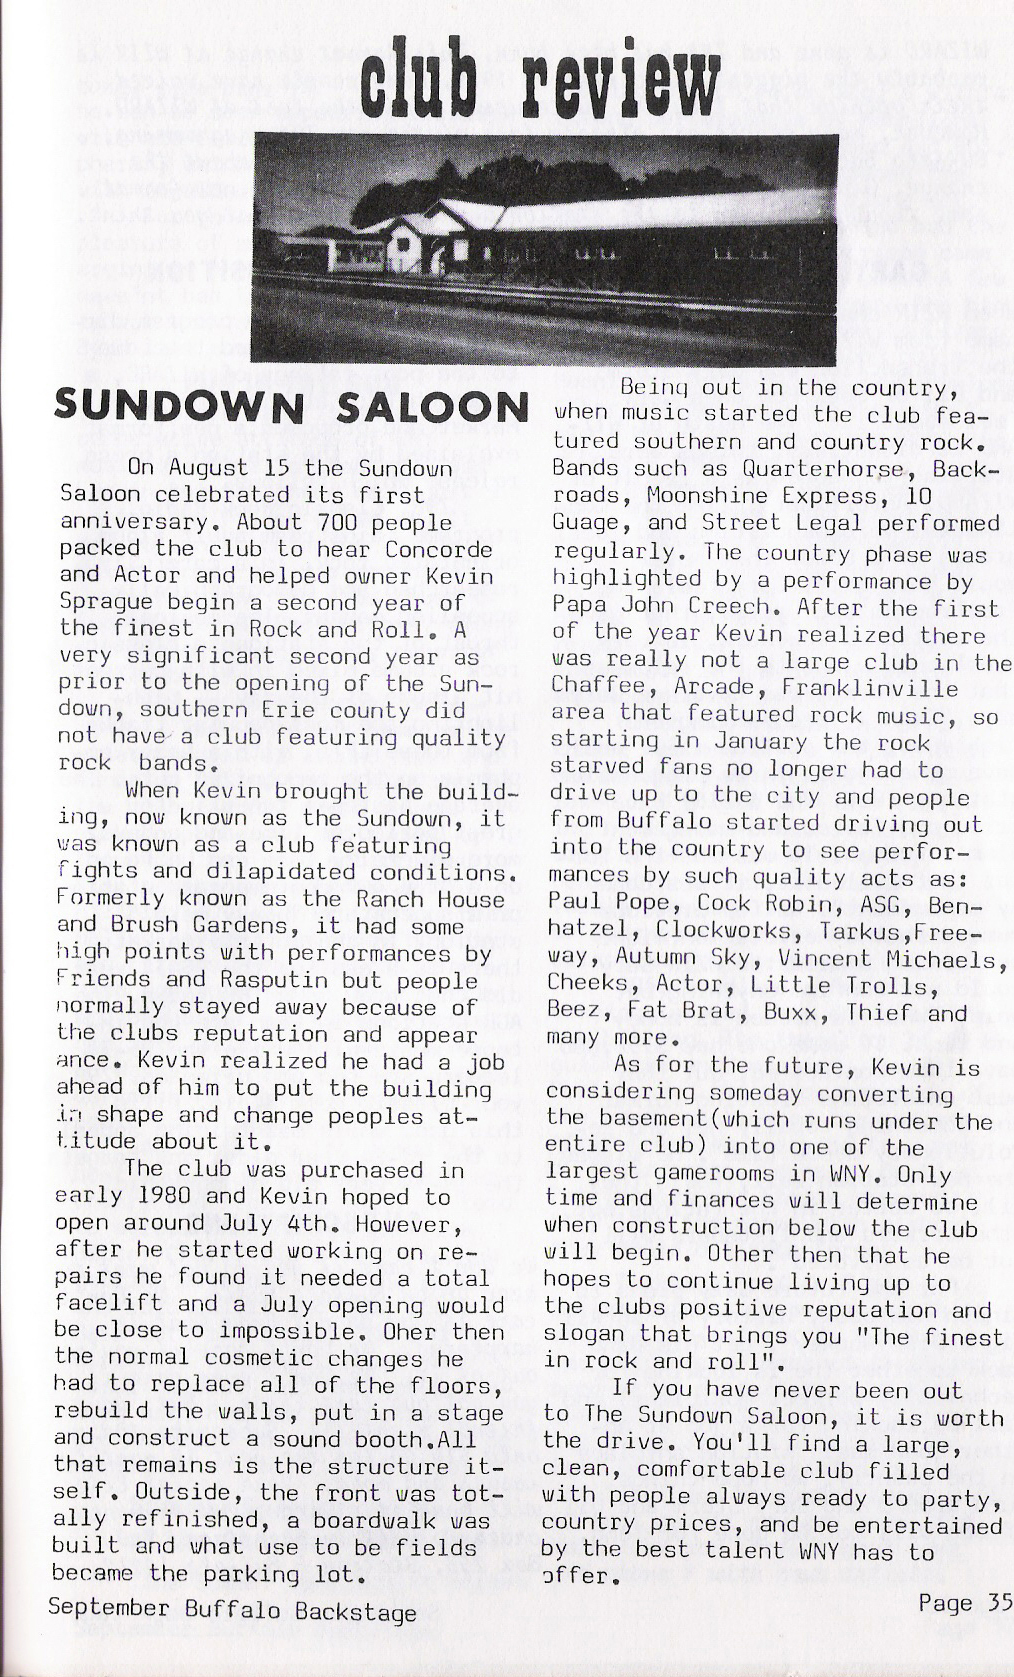 Buffalo Backstage Review of The Sundown Saloon, published September 1981